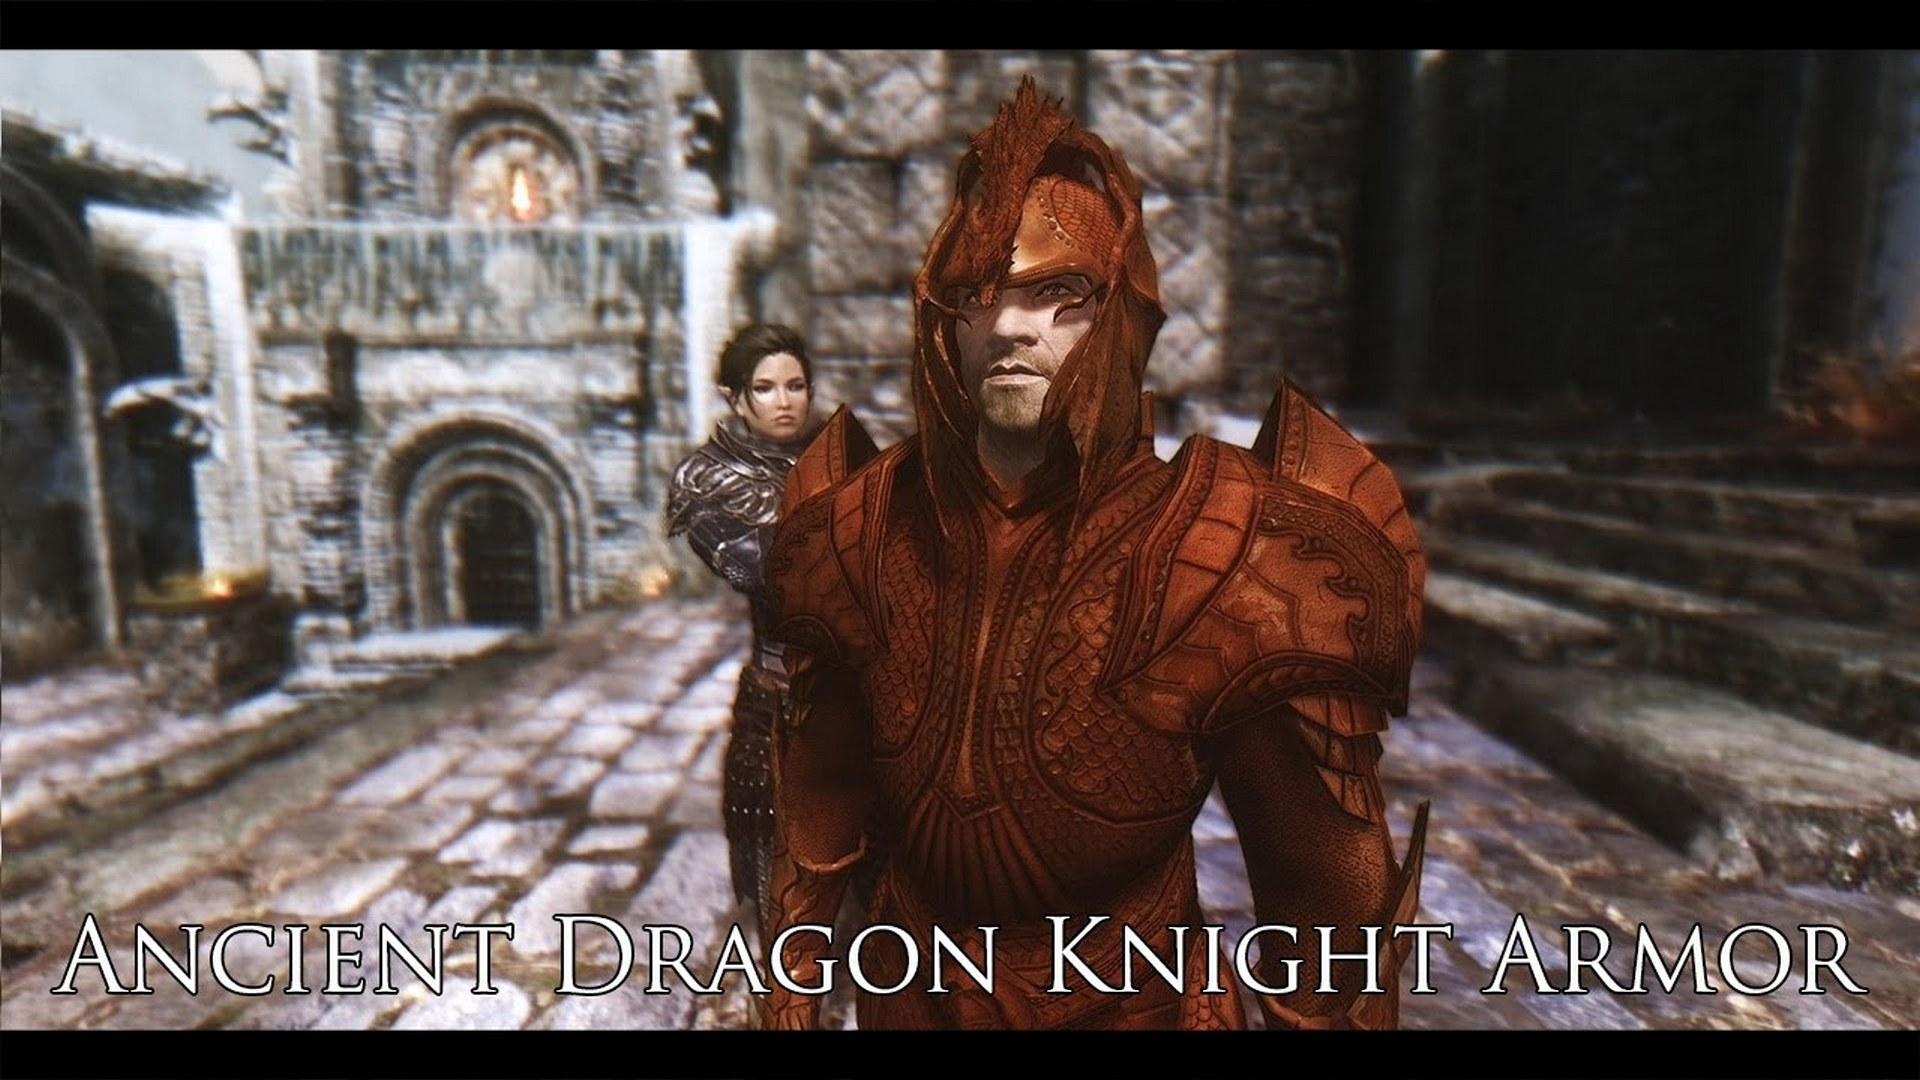 Ancient_Dragon_Knight_Armor.jpg